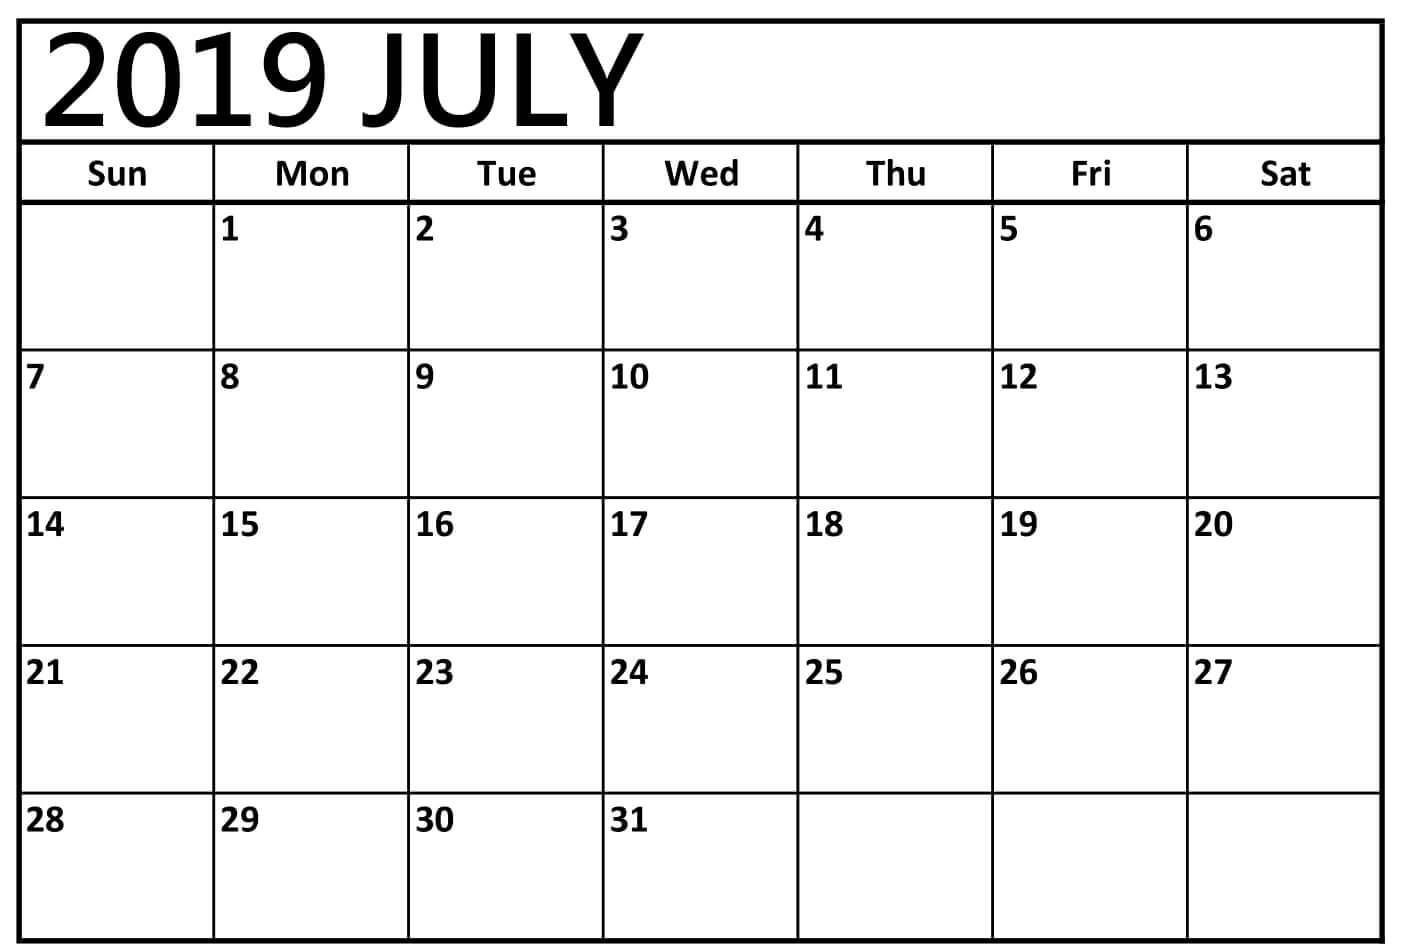 photo relating to Printable July Calendar referred to as Printable July 2019 Calendar Down load - Absolutely free August 2019